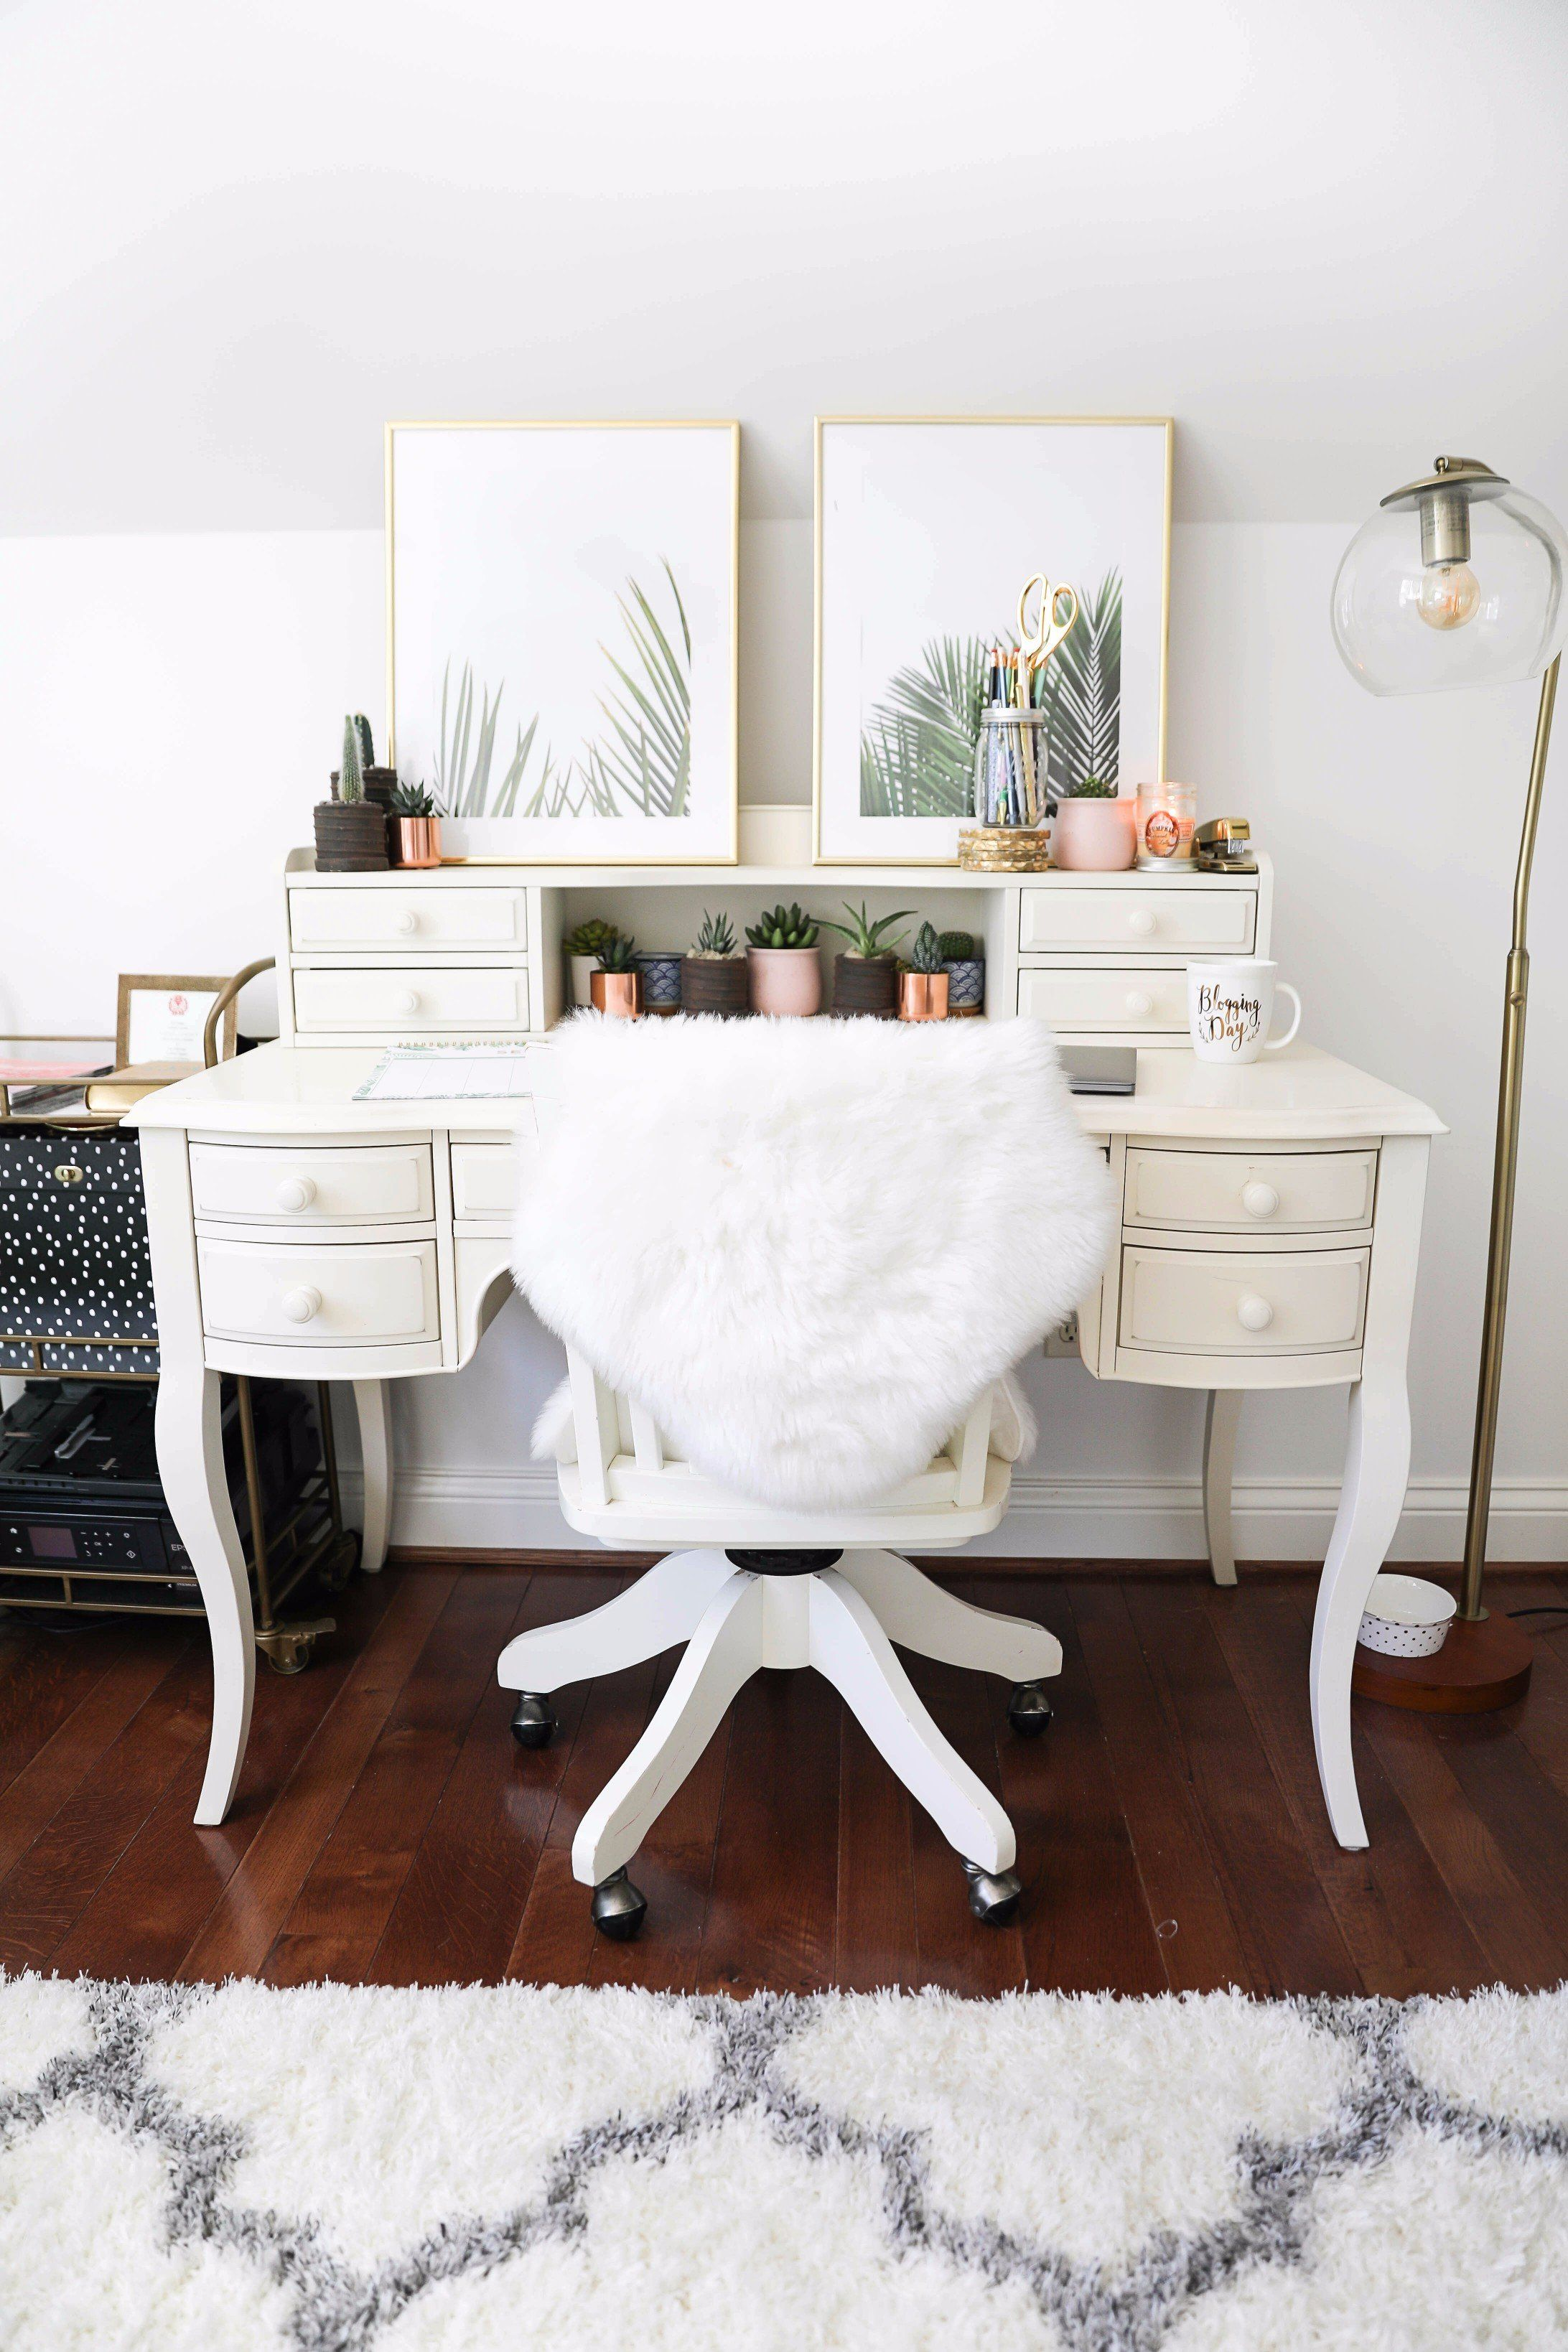 Cute Desk Goals Palm Leaf Room Tour The Perfect Summer